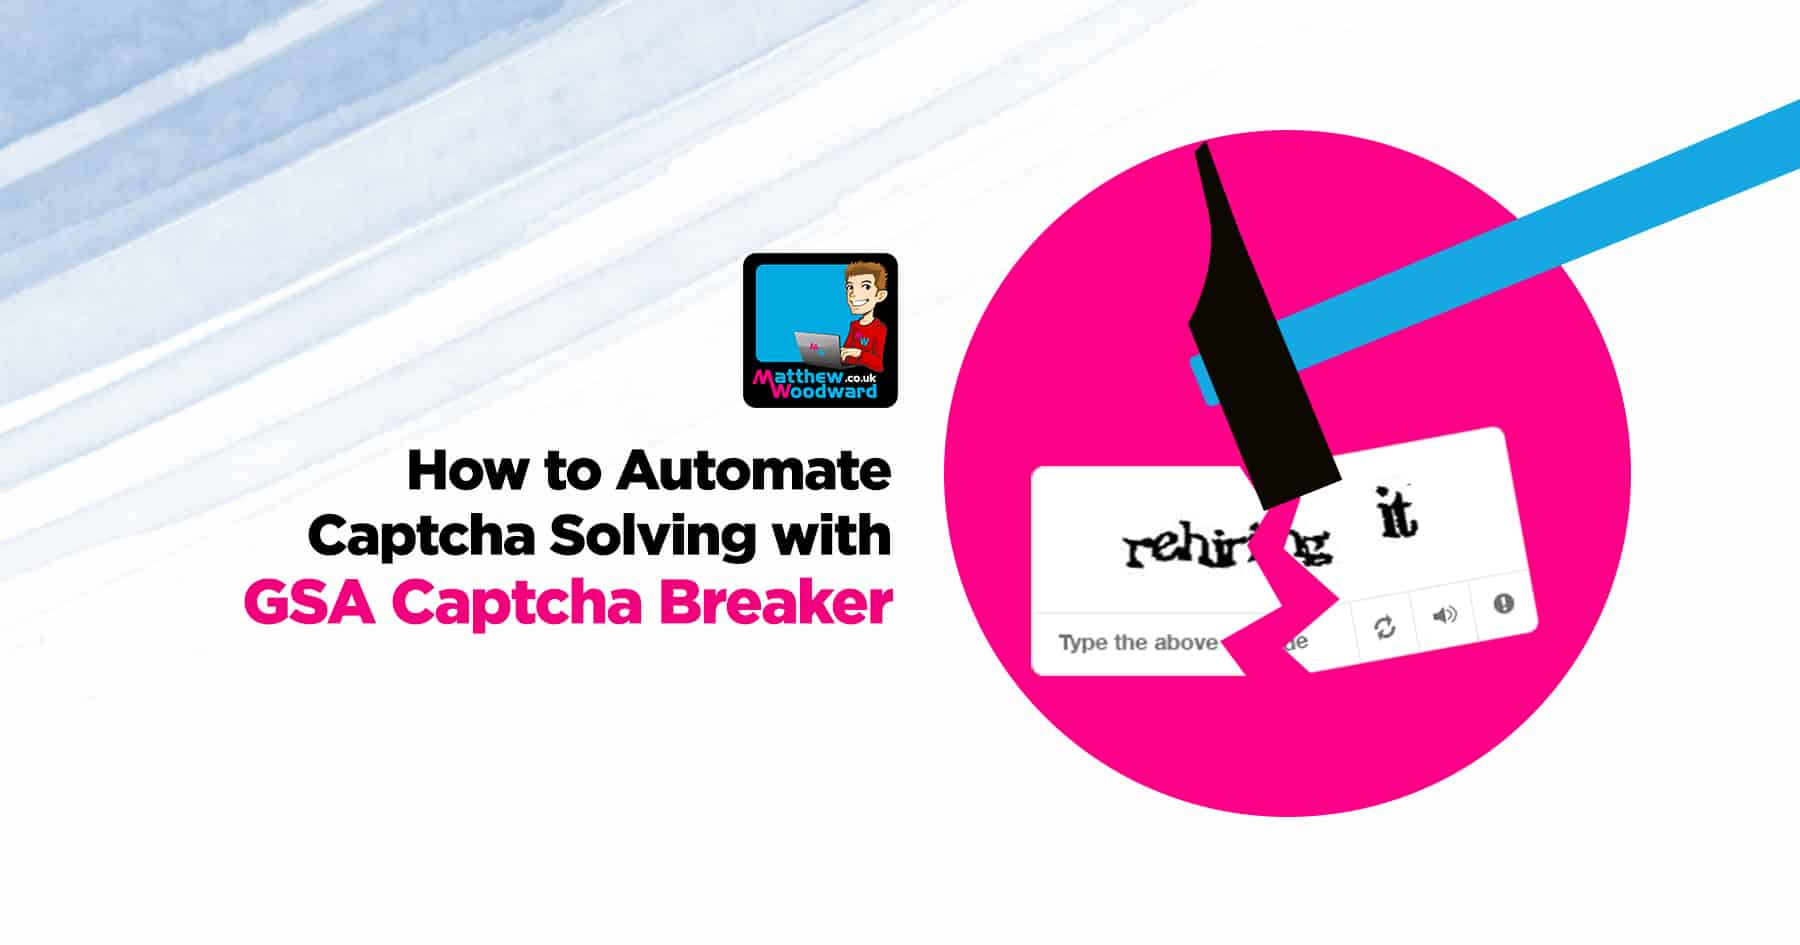 How To Automate Captcha Solving With GSA Captcha Breaker